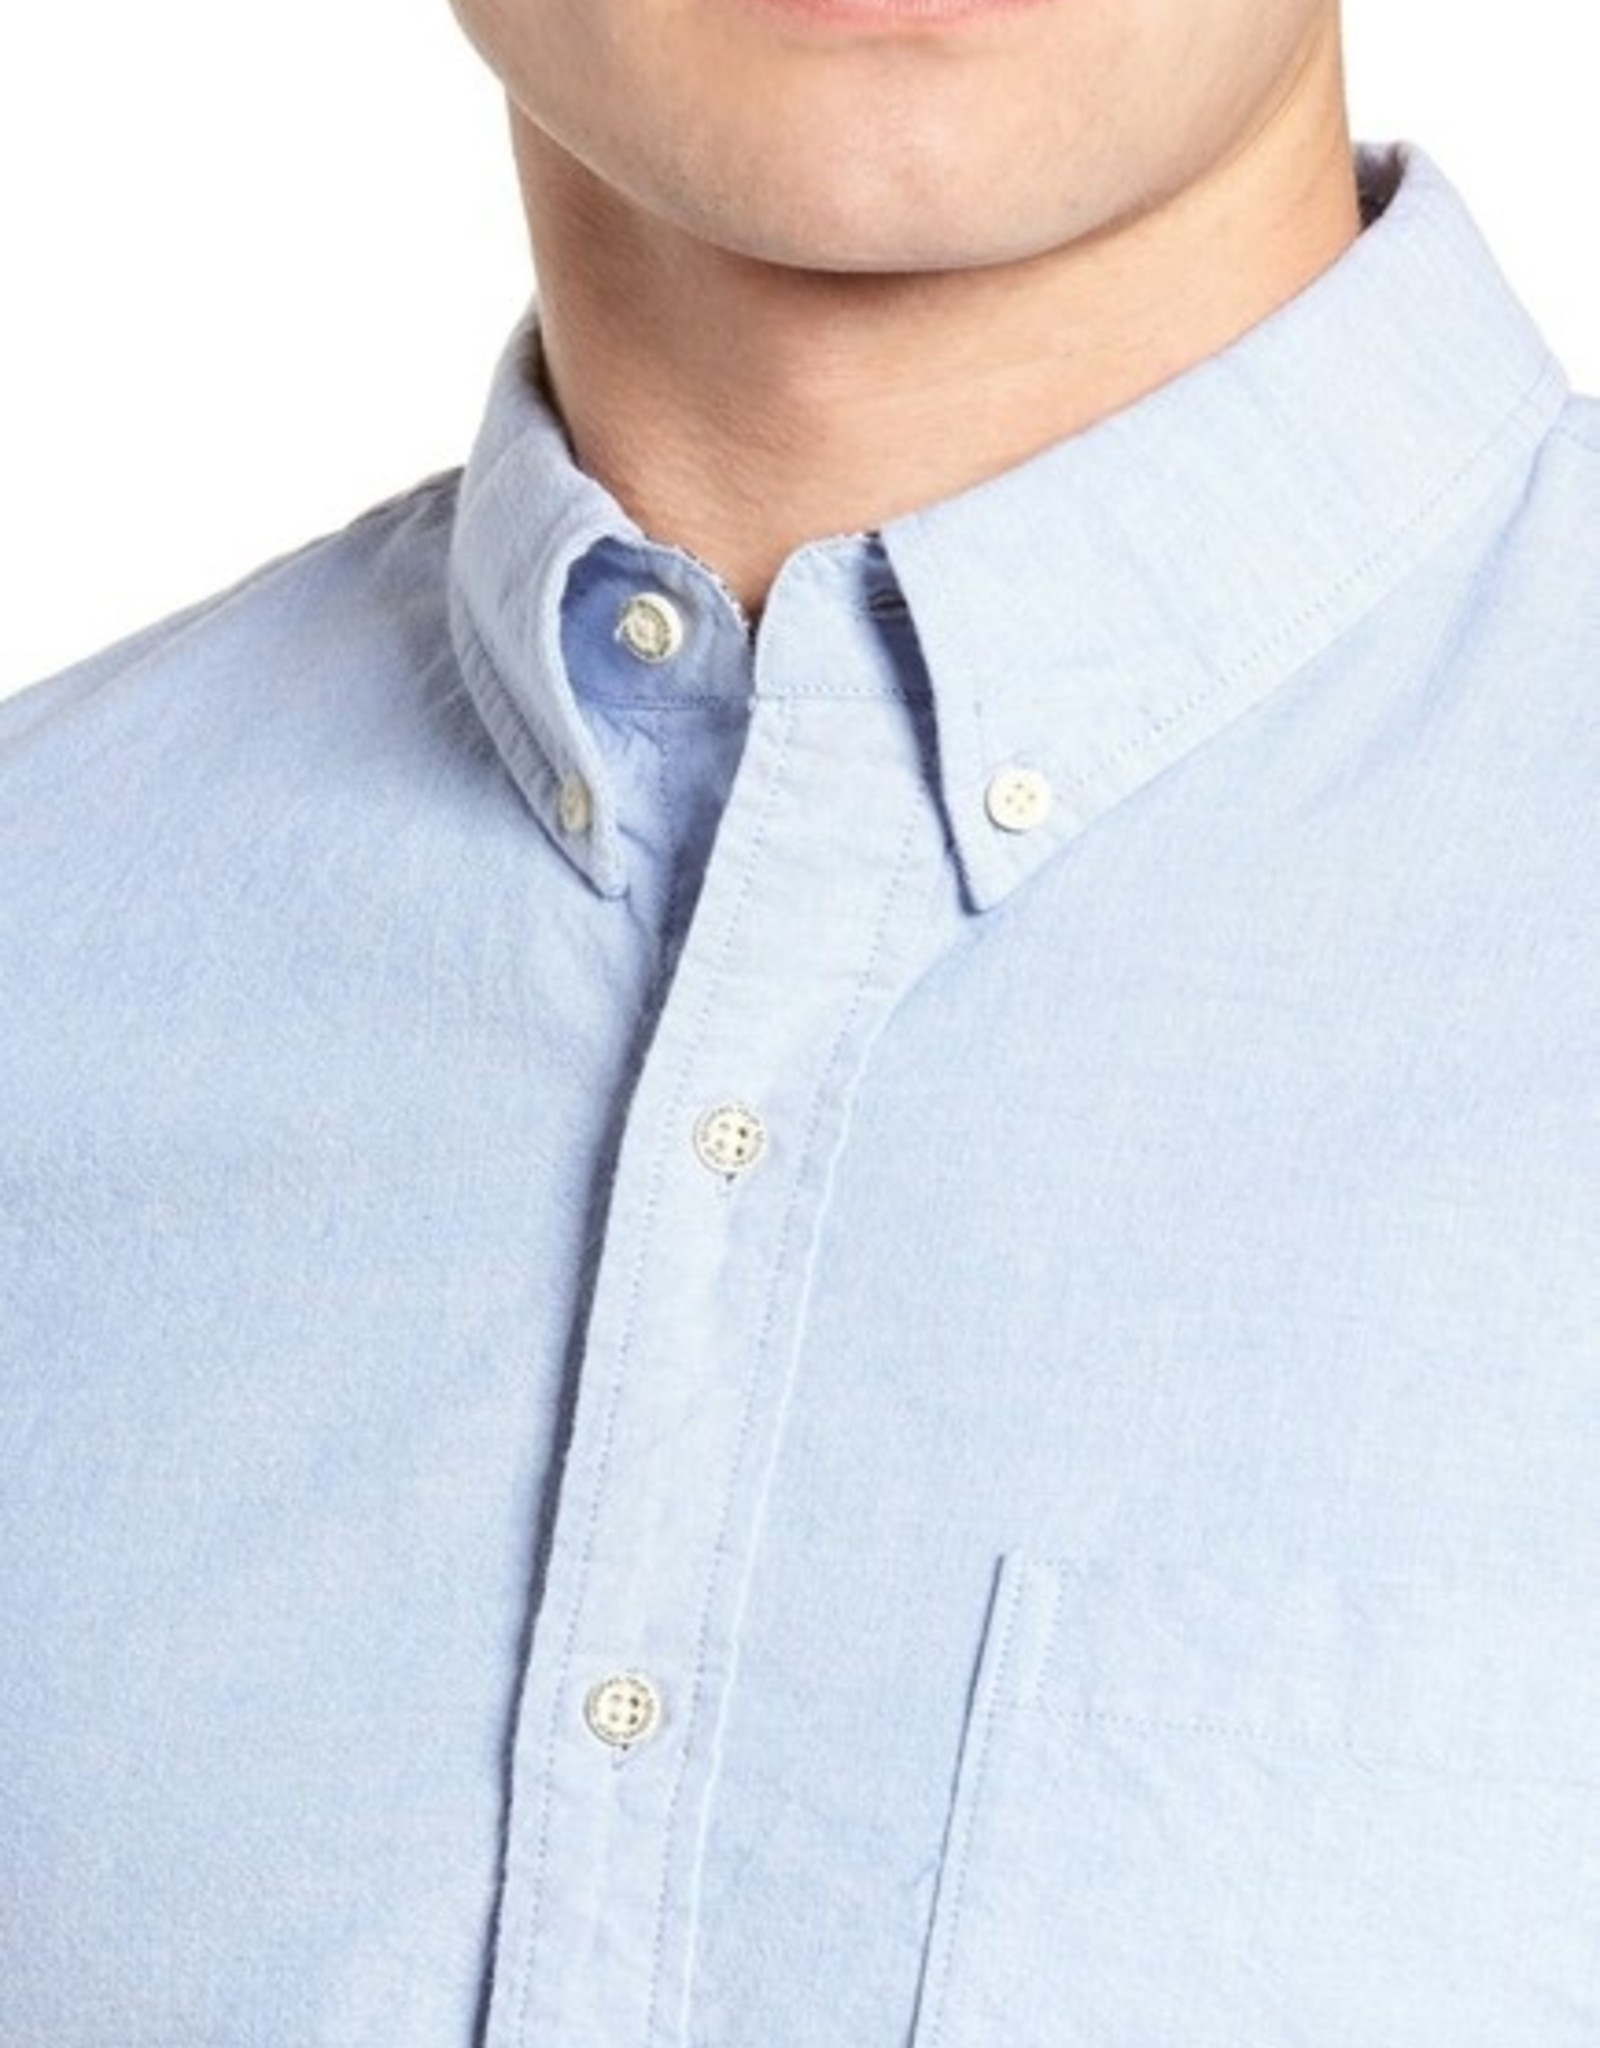 reyn spooner Solid Stretch Oxford Shirt